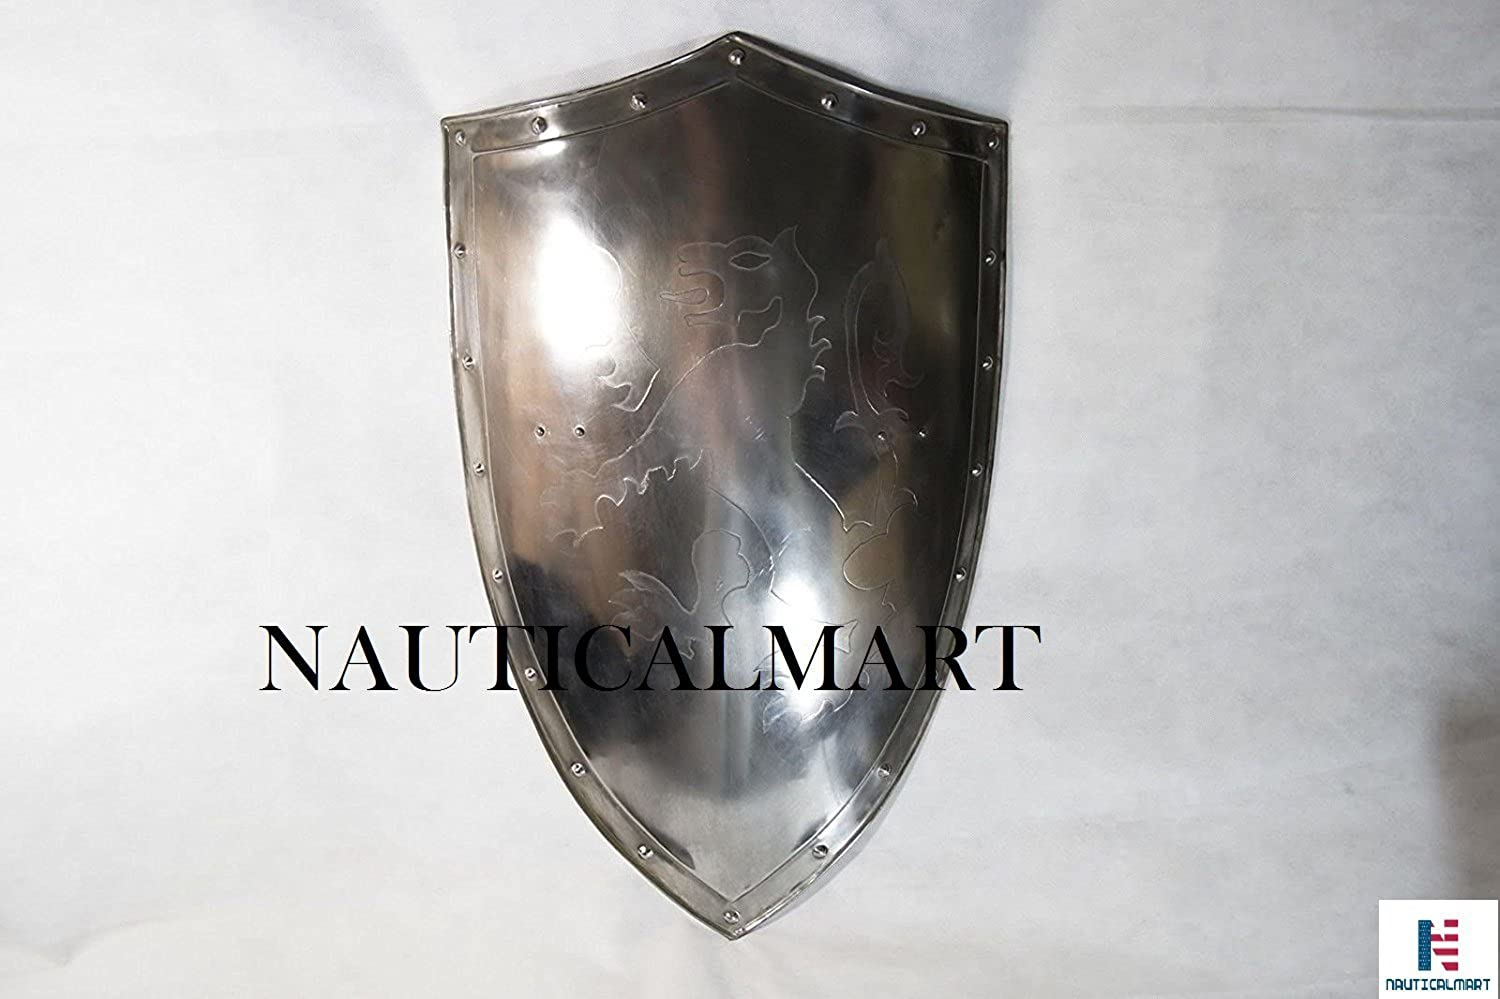 NAUTICALMART Full Size and Full Functional Knights Templar Suit of ArmorShield Only